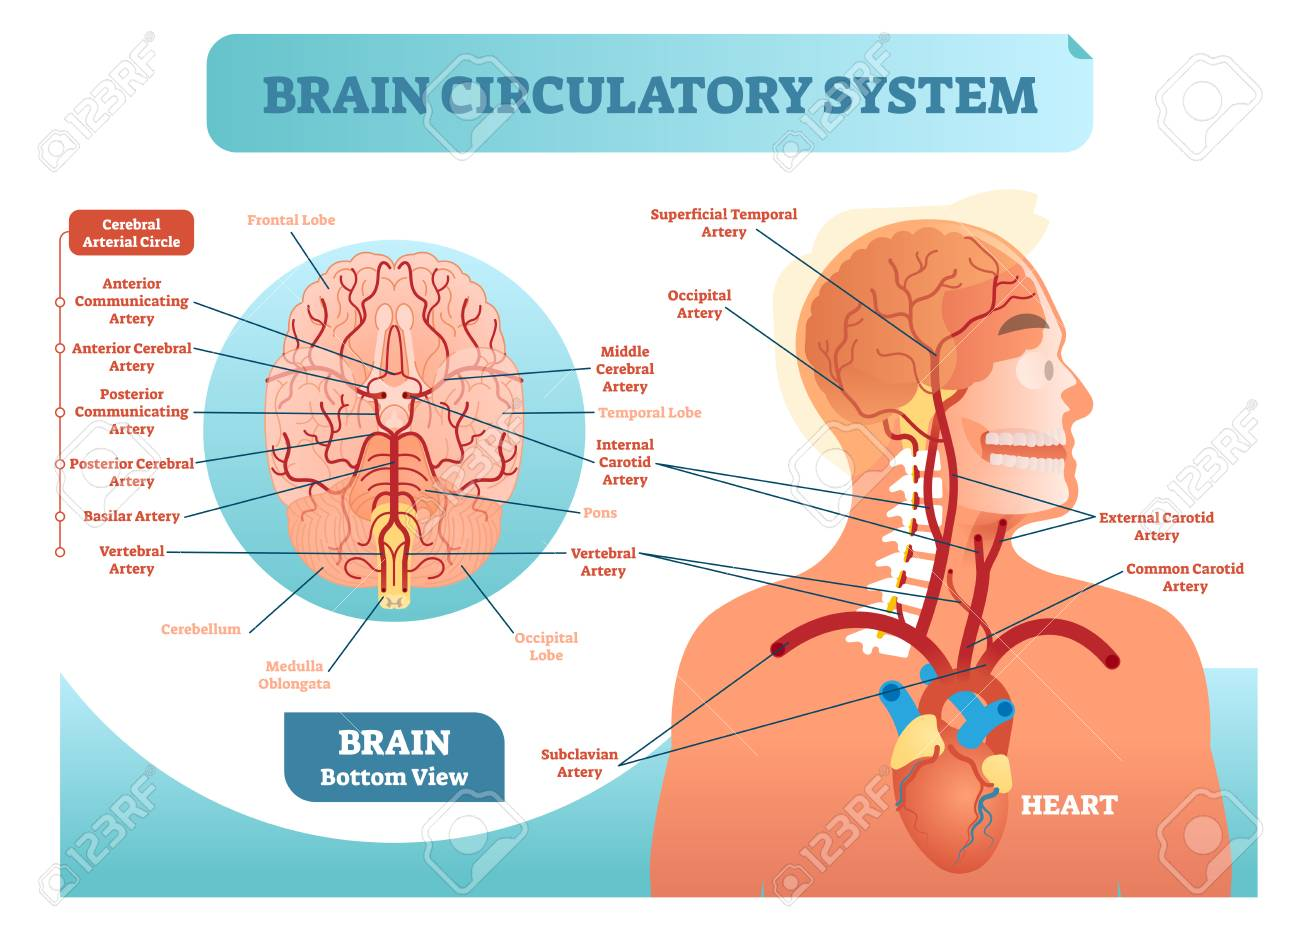 Detailed Brain Circulatory System Diagram - Auto Electrical Wiring ...